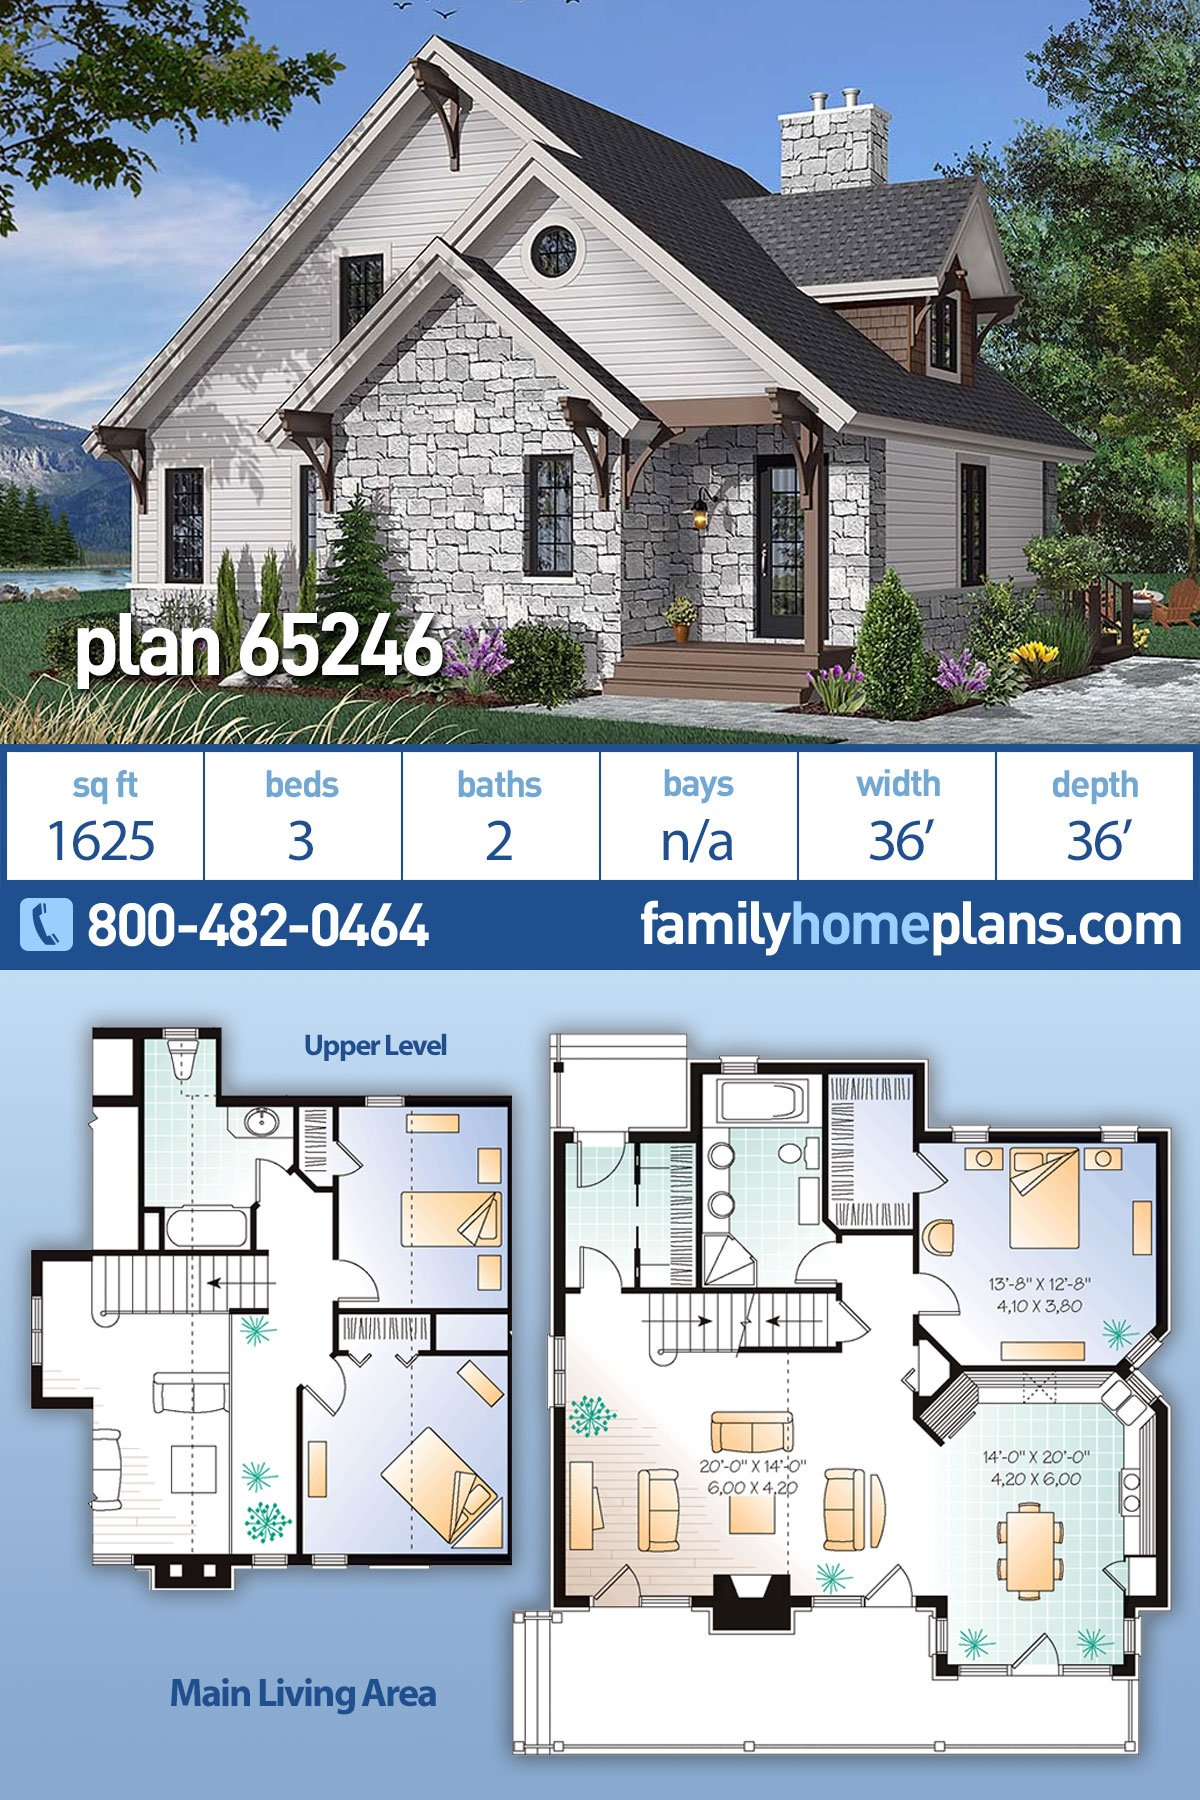 Bungalow, Cottage, Country, Craftsman House Plan 65246 with 3 Beds, 2 Baths